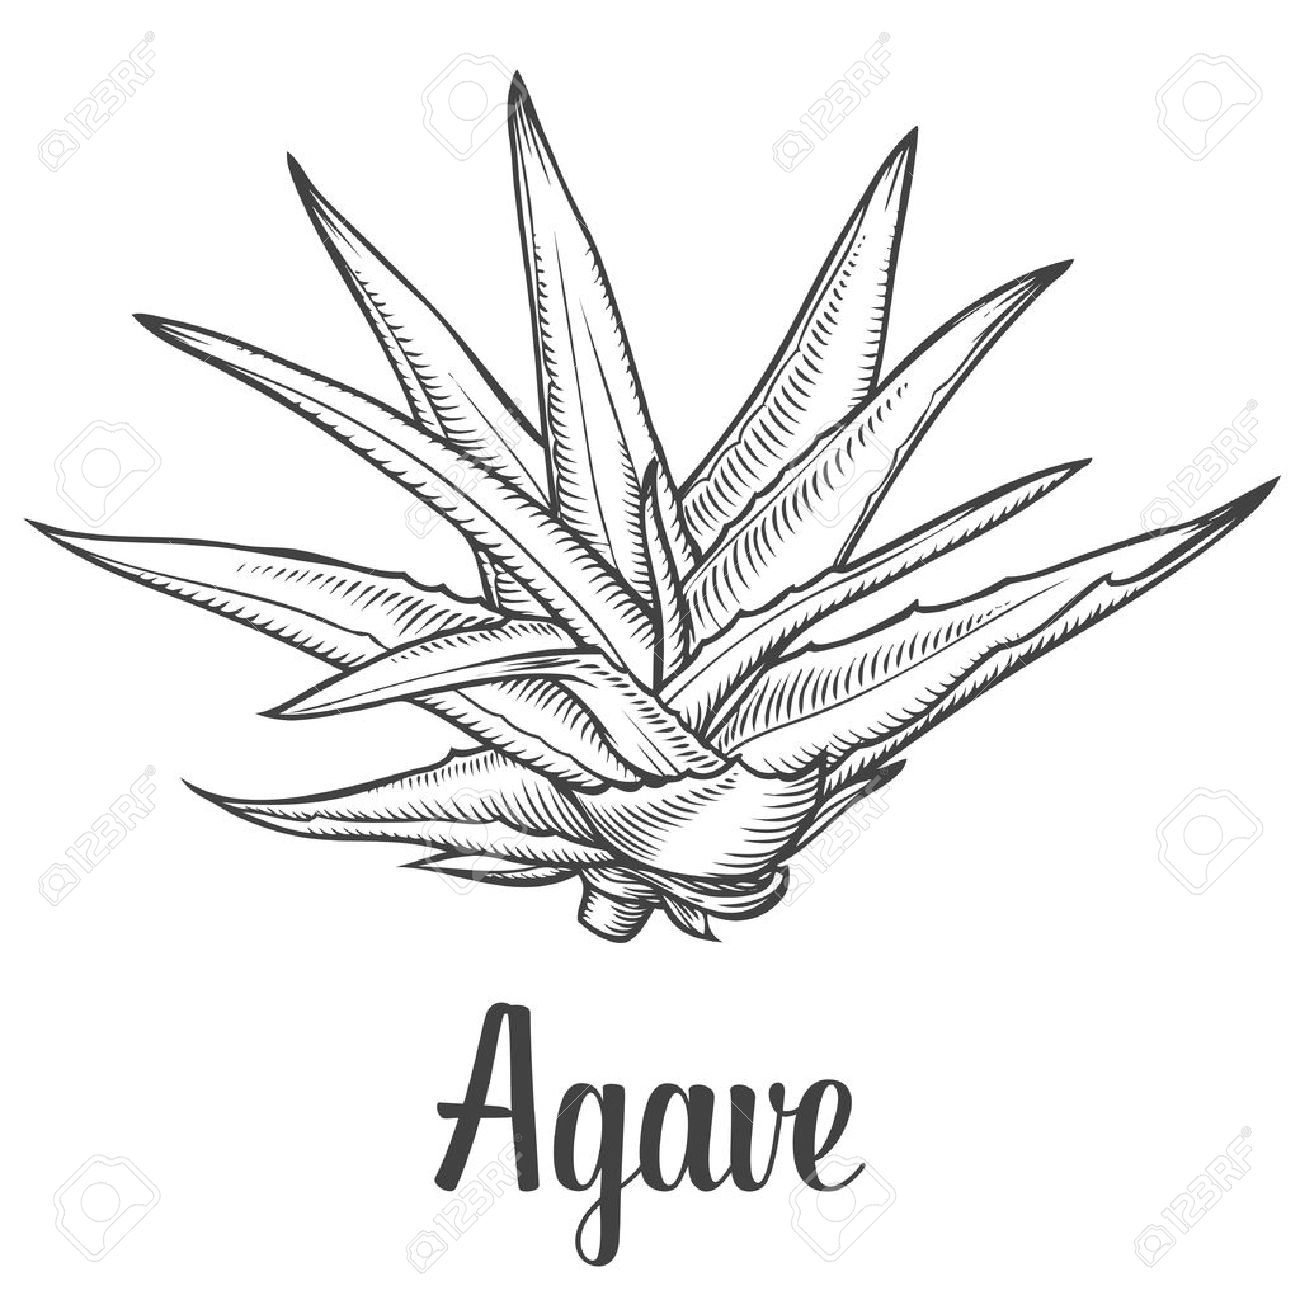 1,186 Agave Stock Vector Illustration And Royalty Free Agave Clipart.